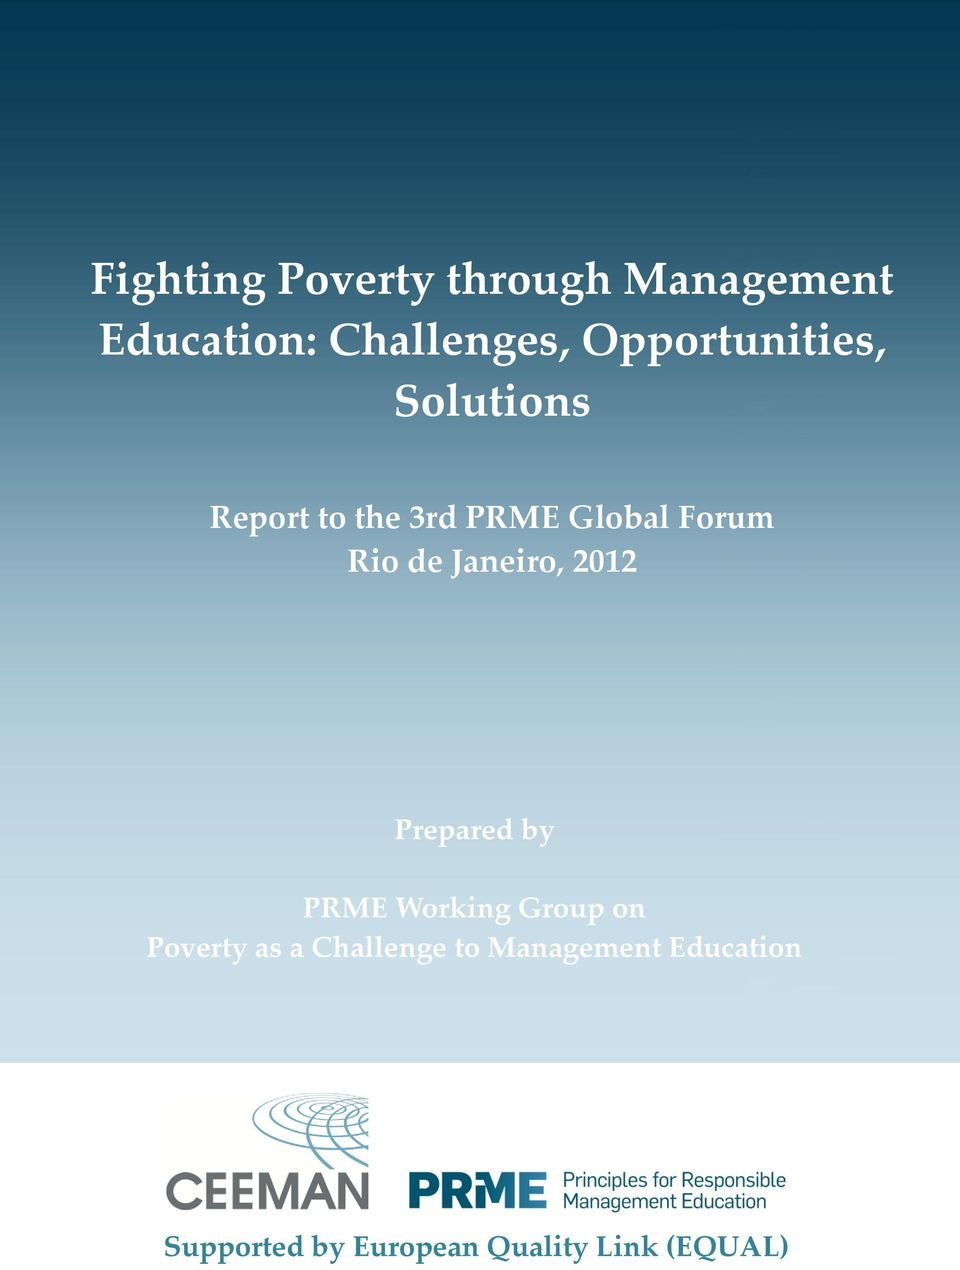 de Janeiro, 2012 Prepared by PRME Working Group on Poverty as a